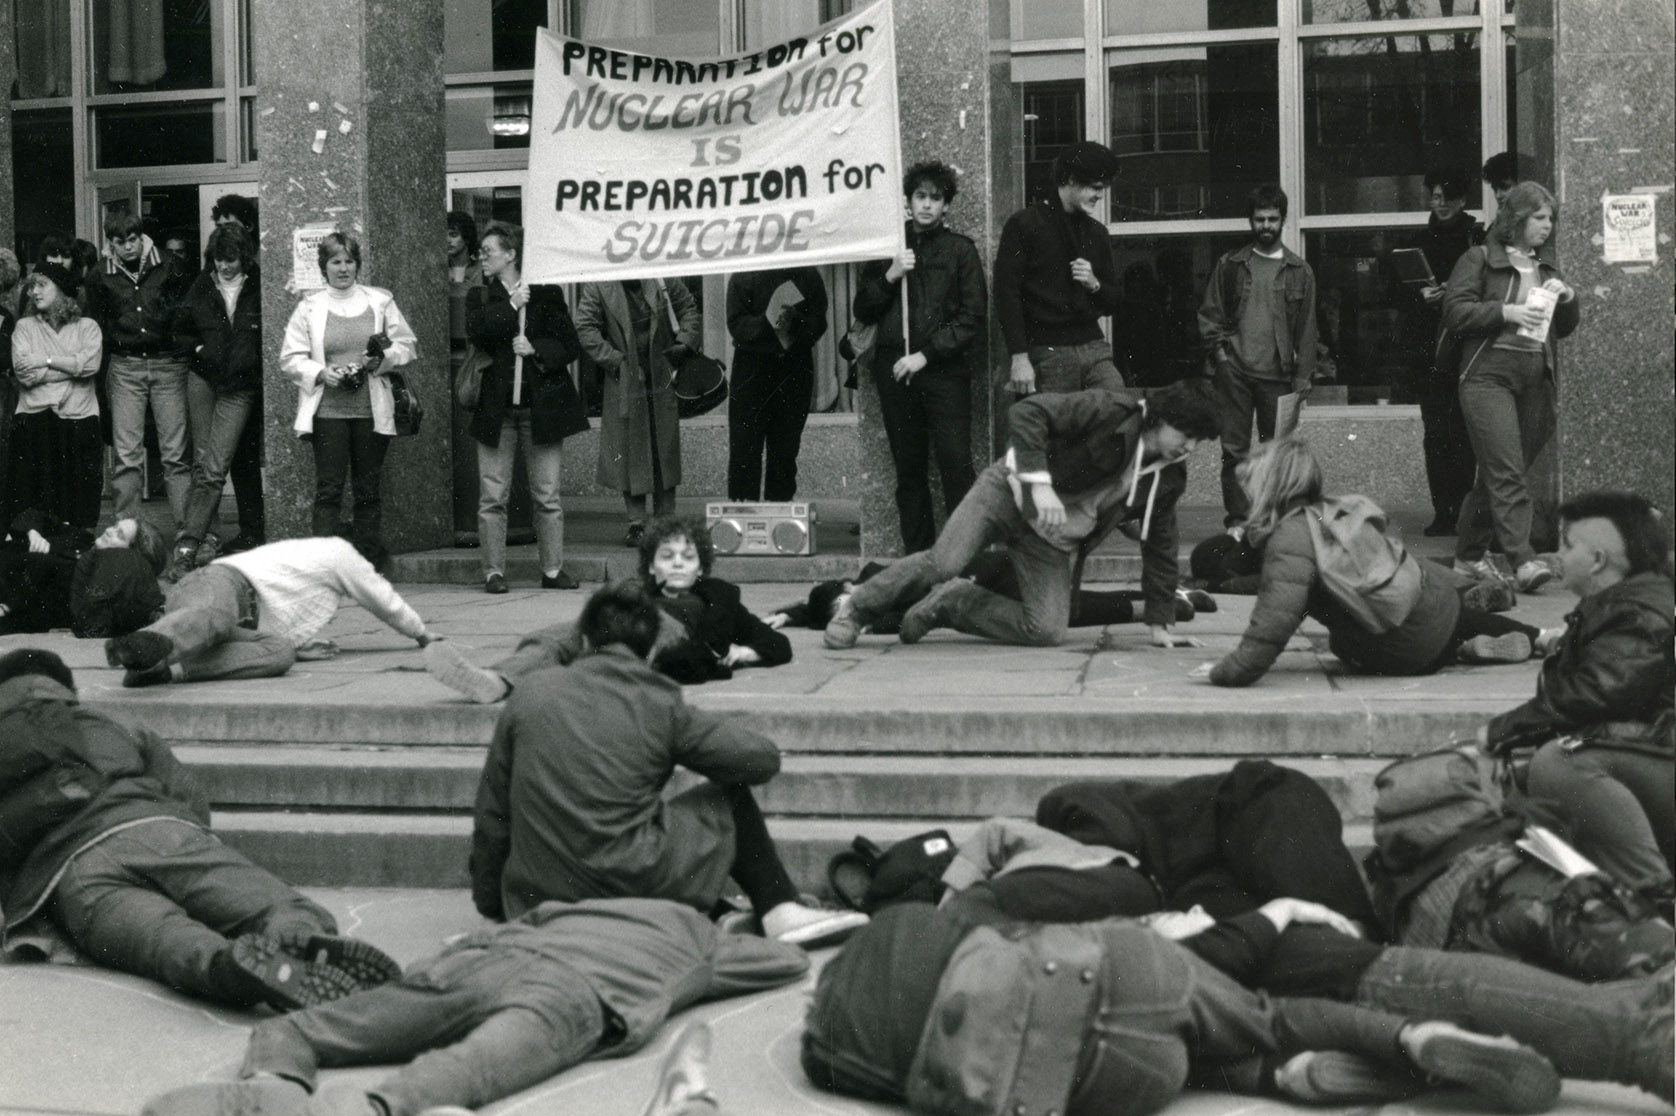 Depiction of Die-in at the Student Union